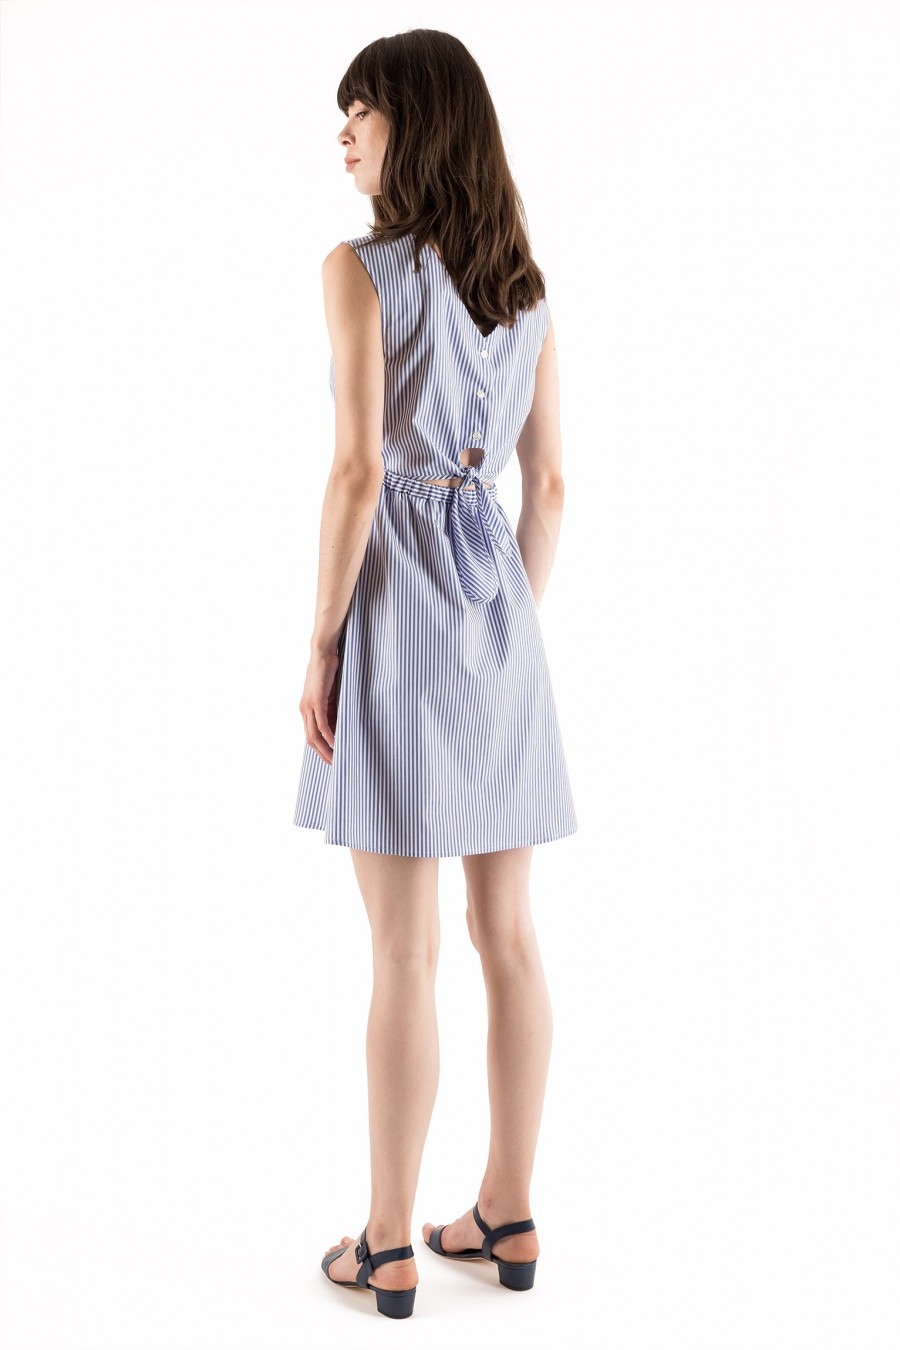 Summer dress with bow on the waist